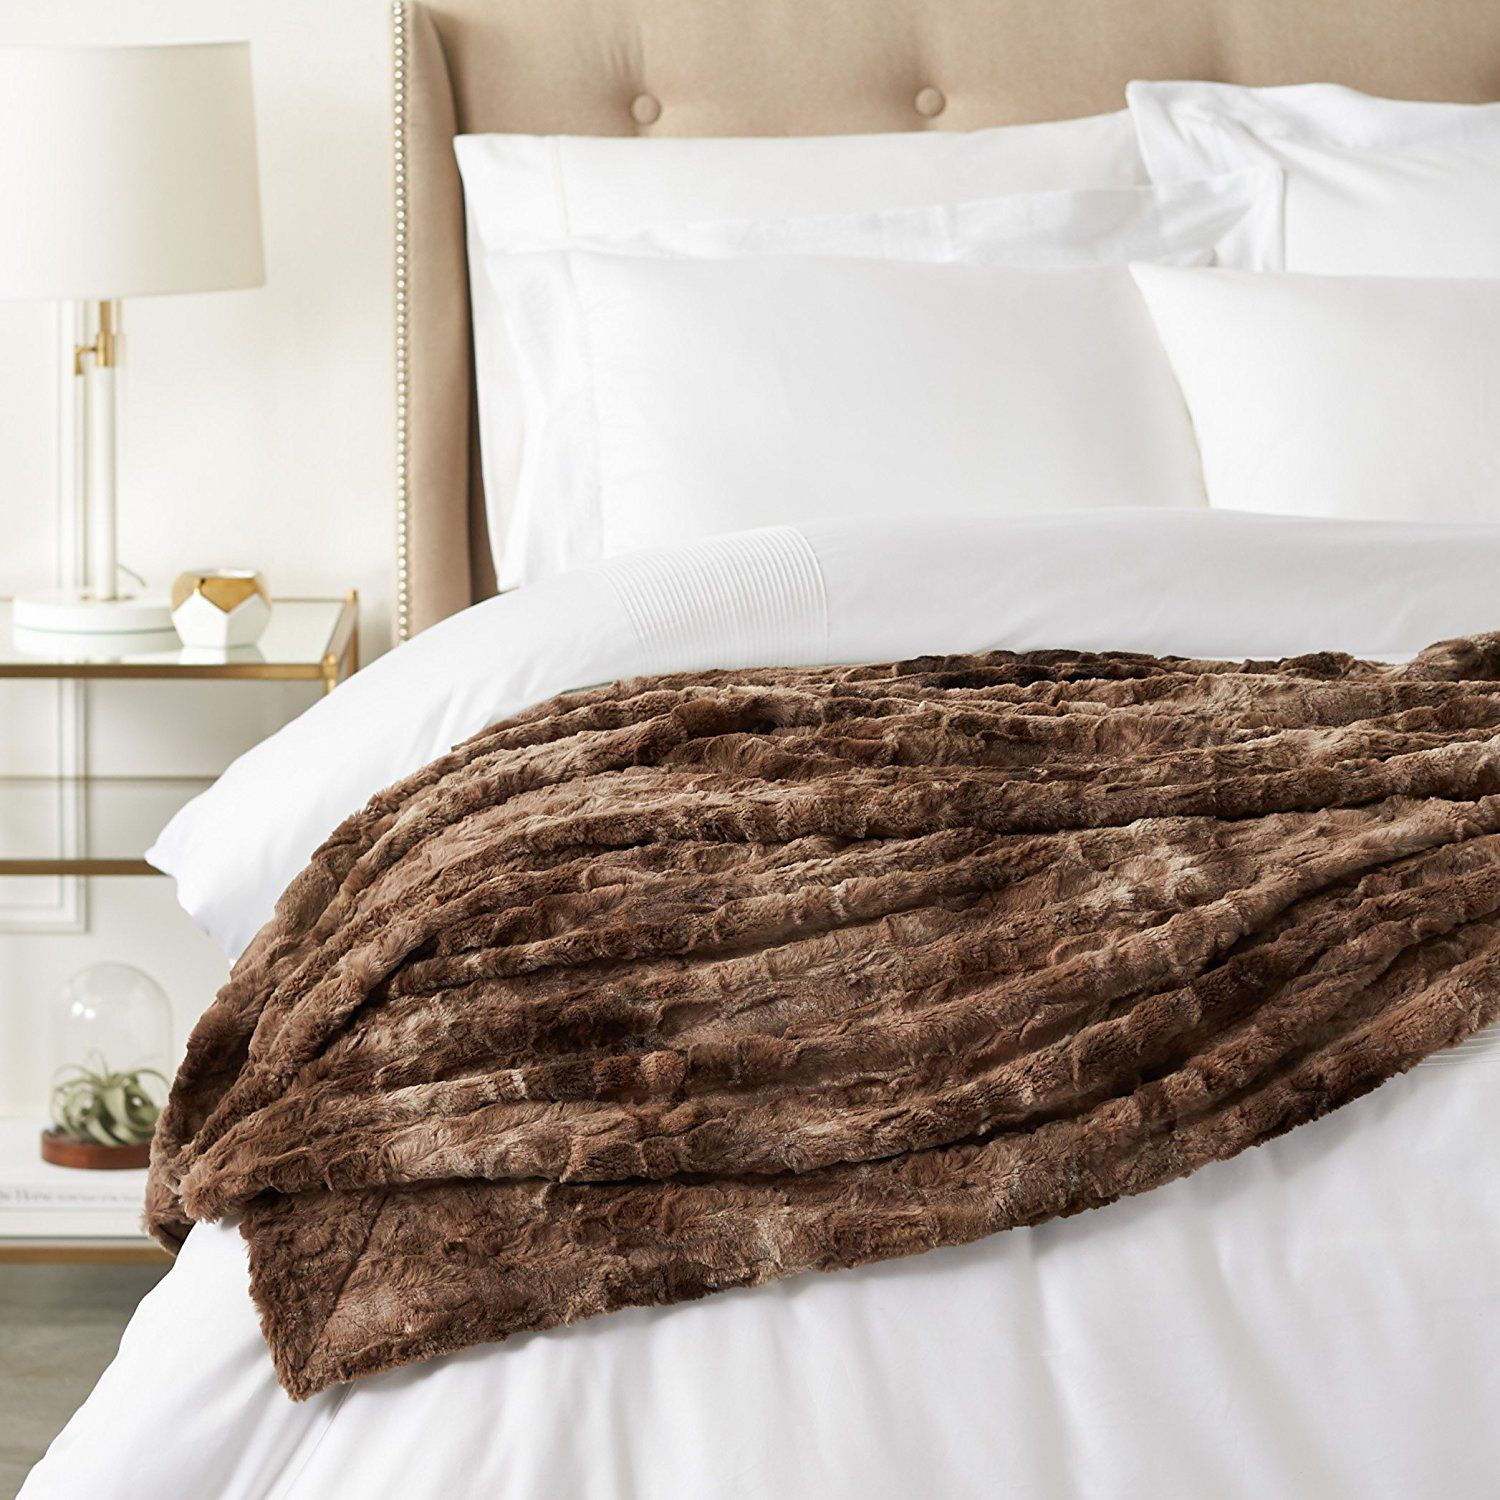 double thro wolf full comforter luxury throw blanket fur ga throws faux elm furry size west genial heated